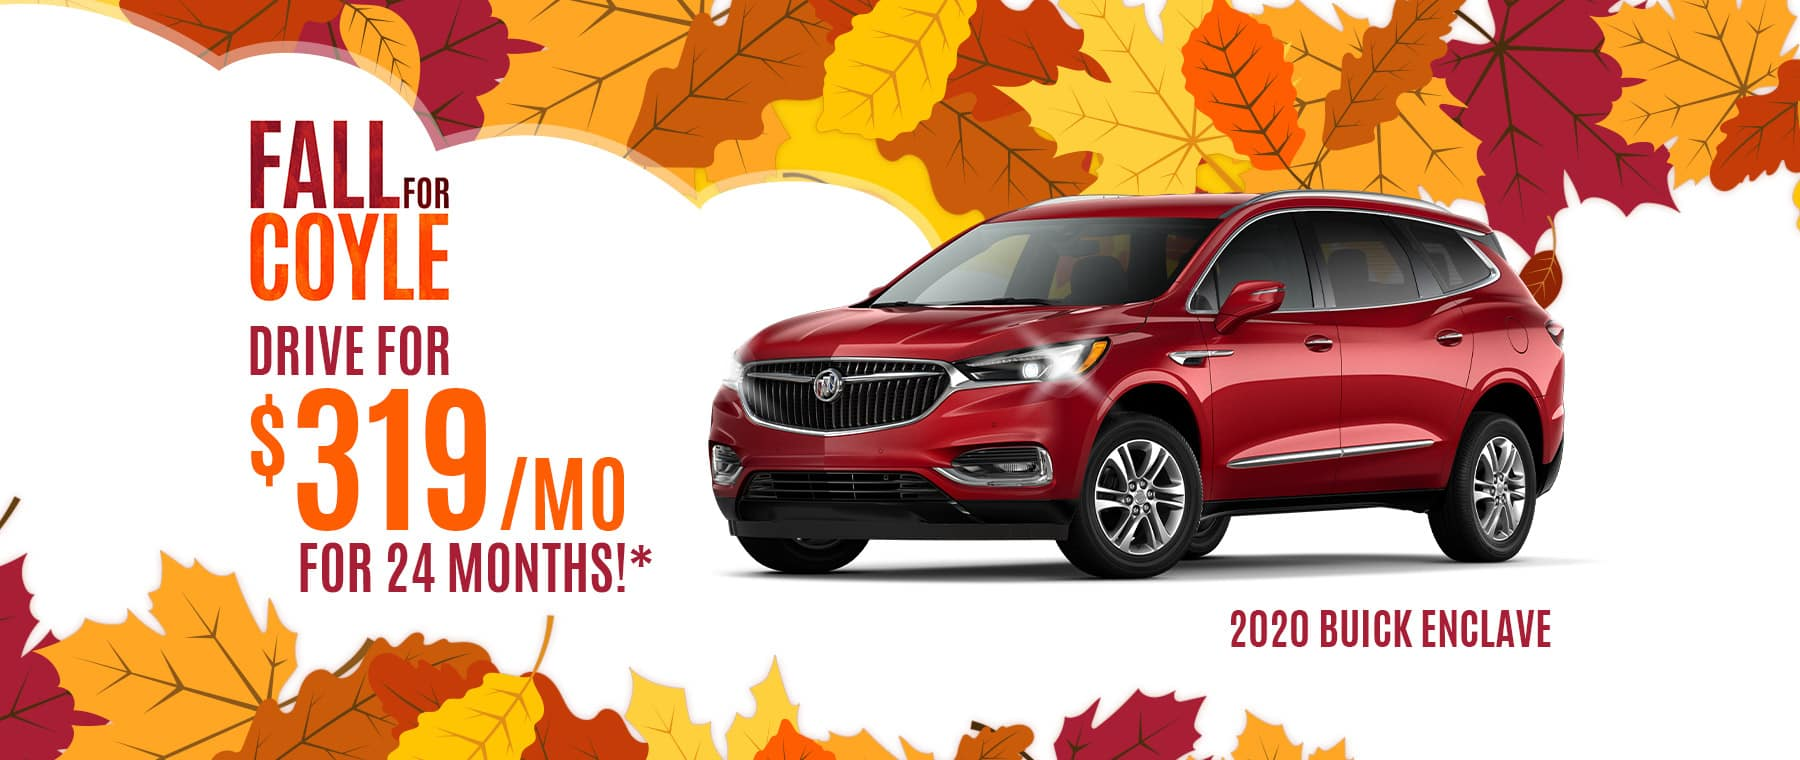 Lease a New Buick Enclave near New Albany, Indiana